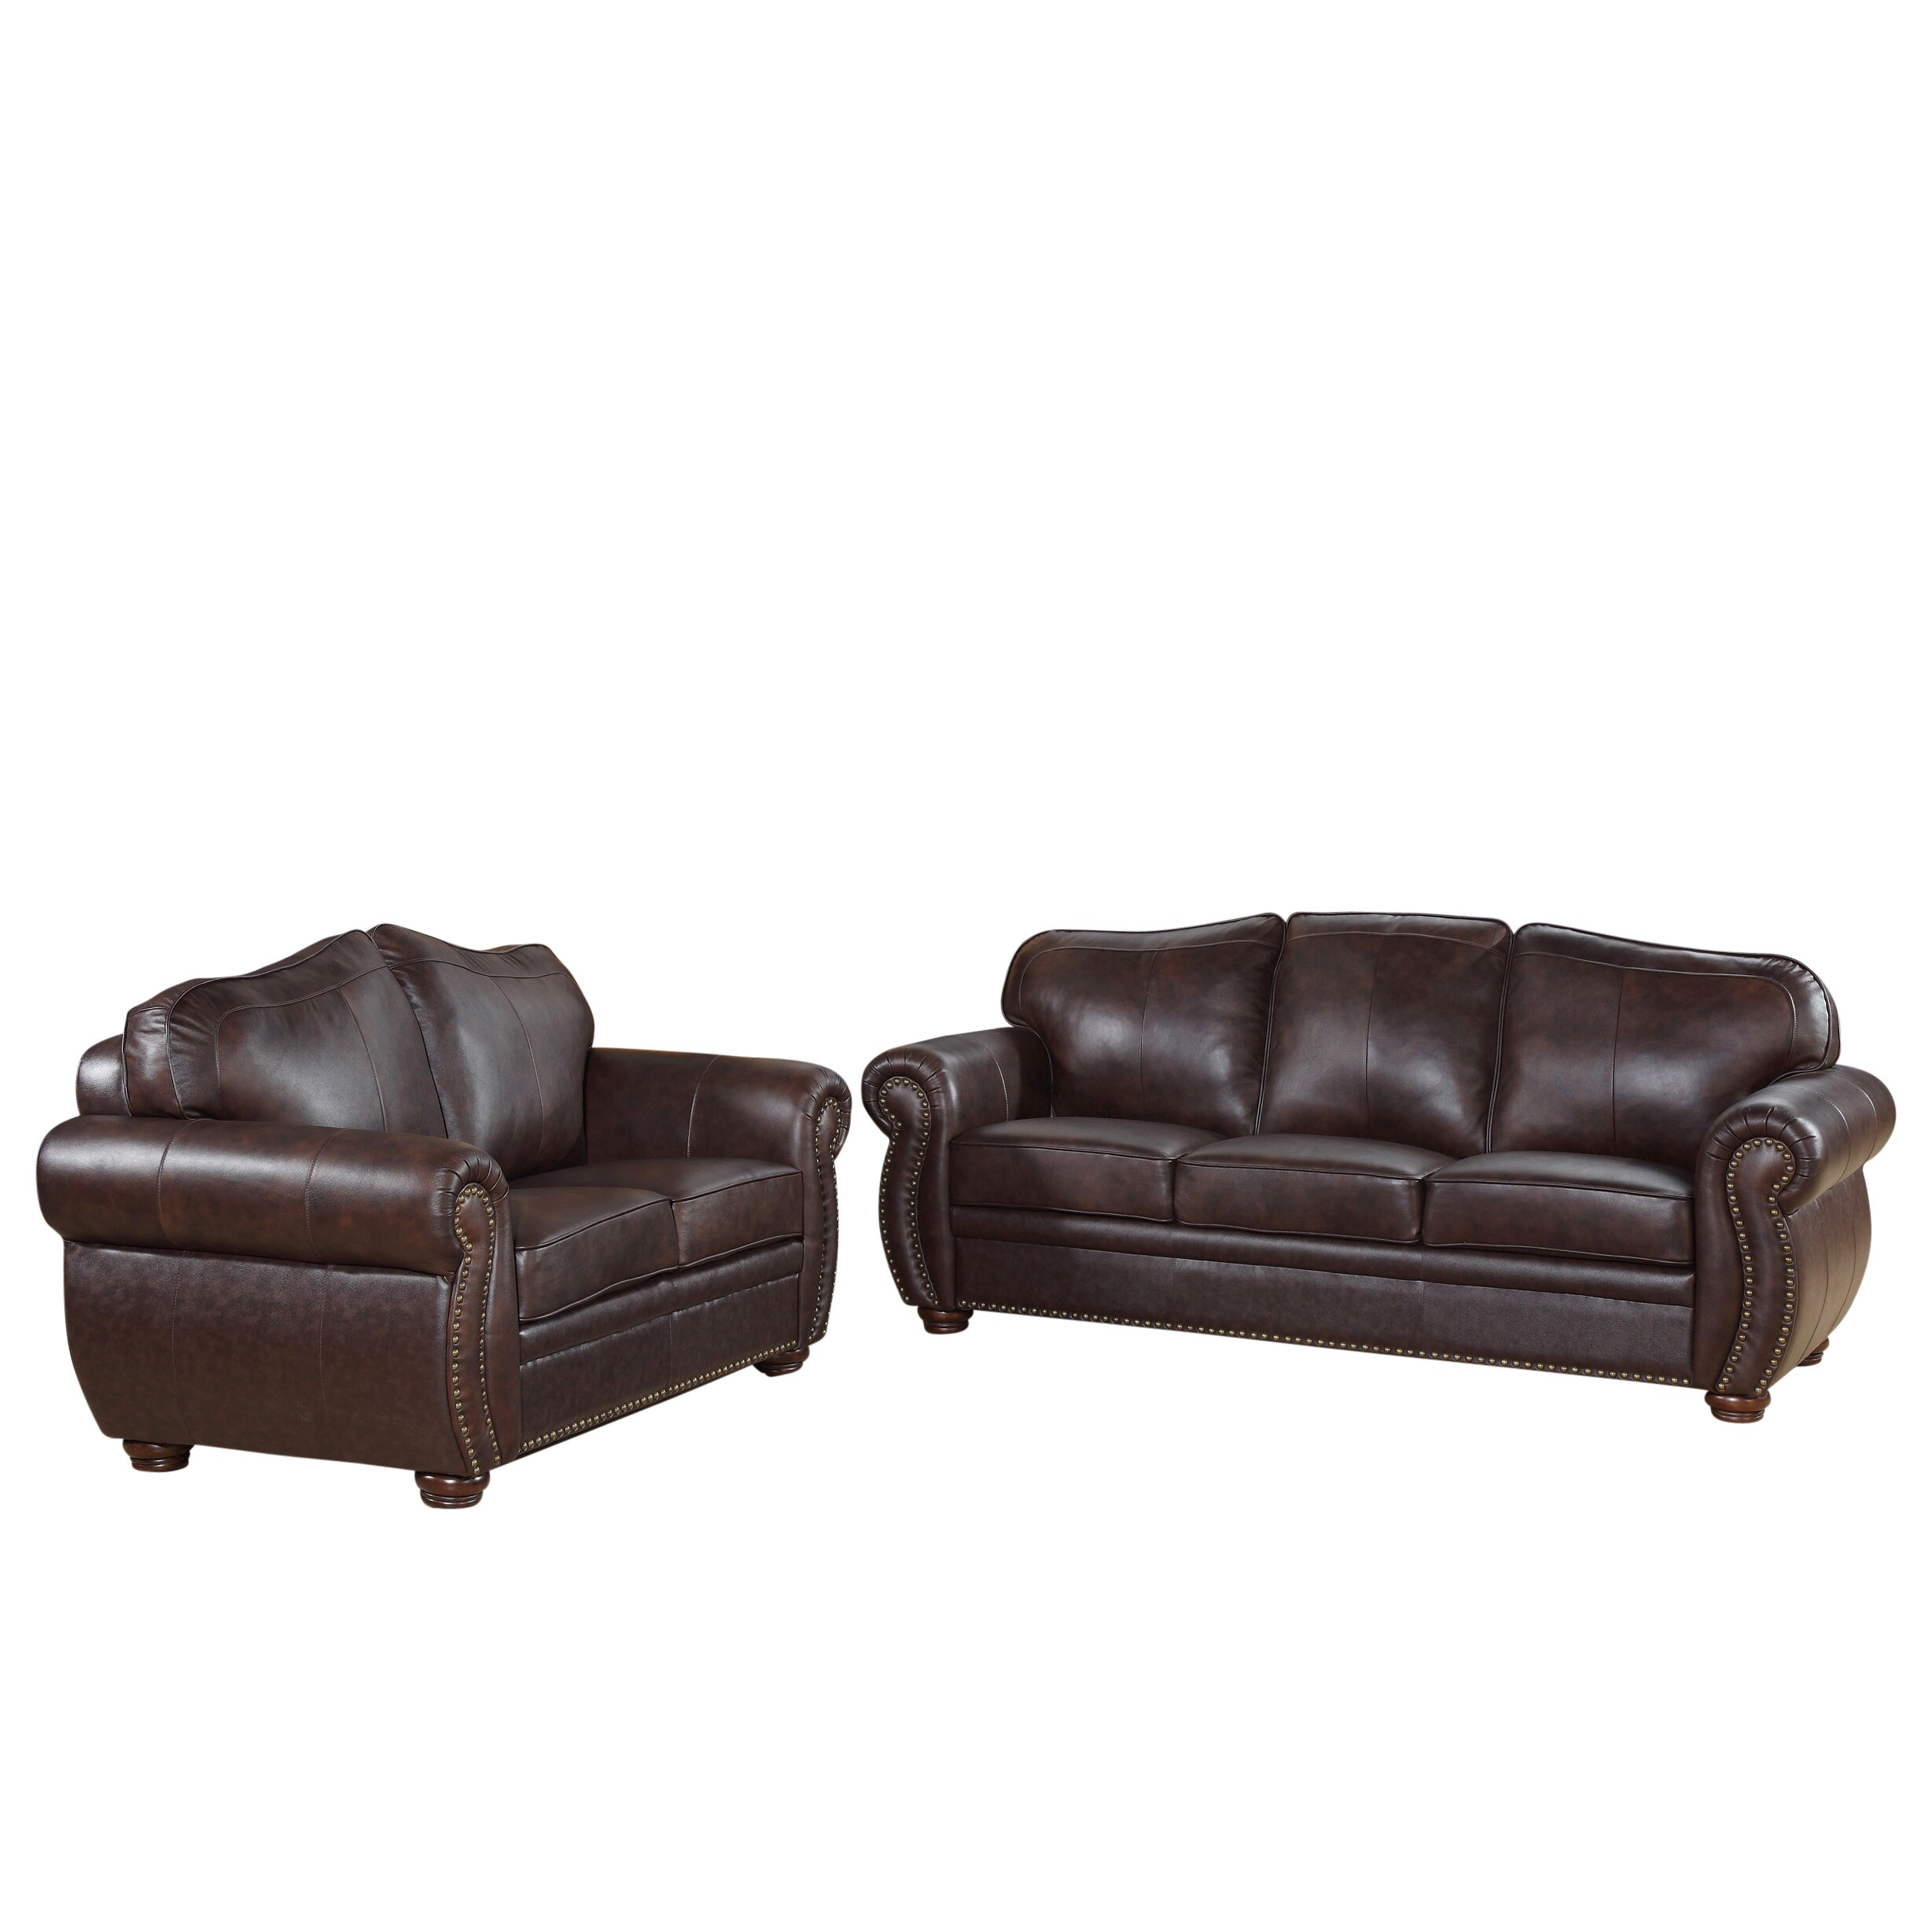 Darby Home Co Morgenstern Leather Sofa And Loveseat Set